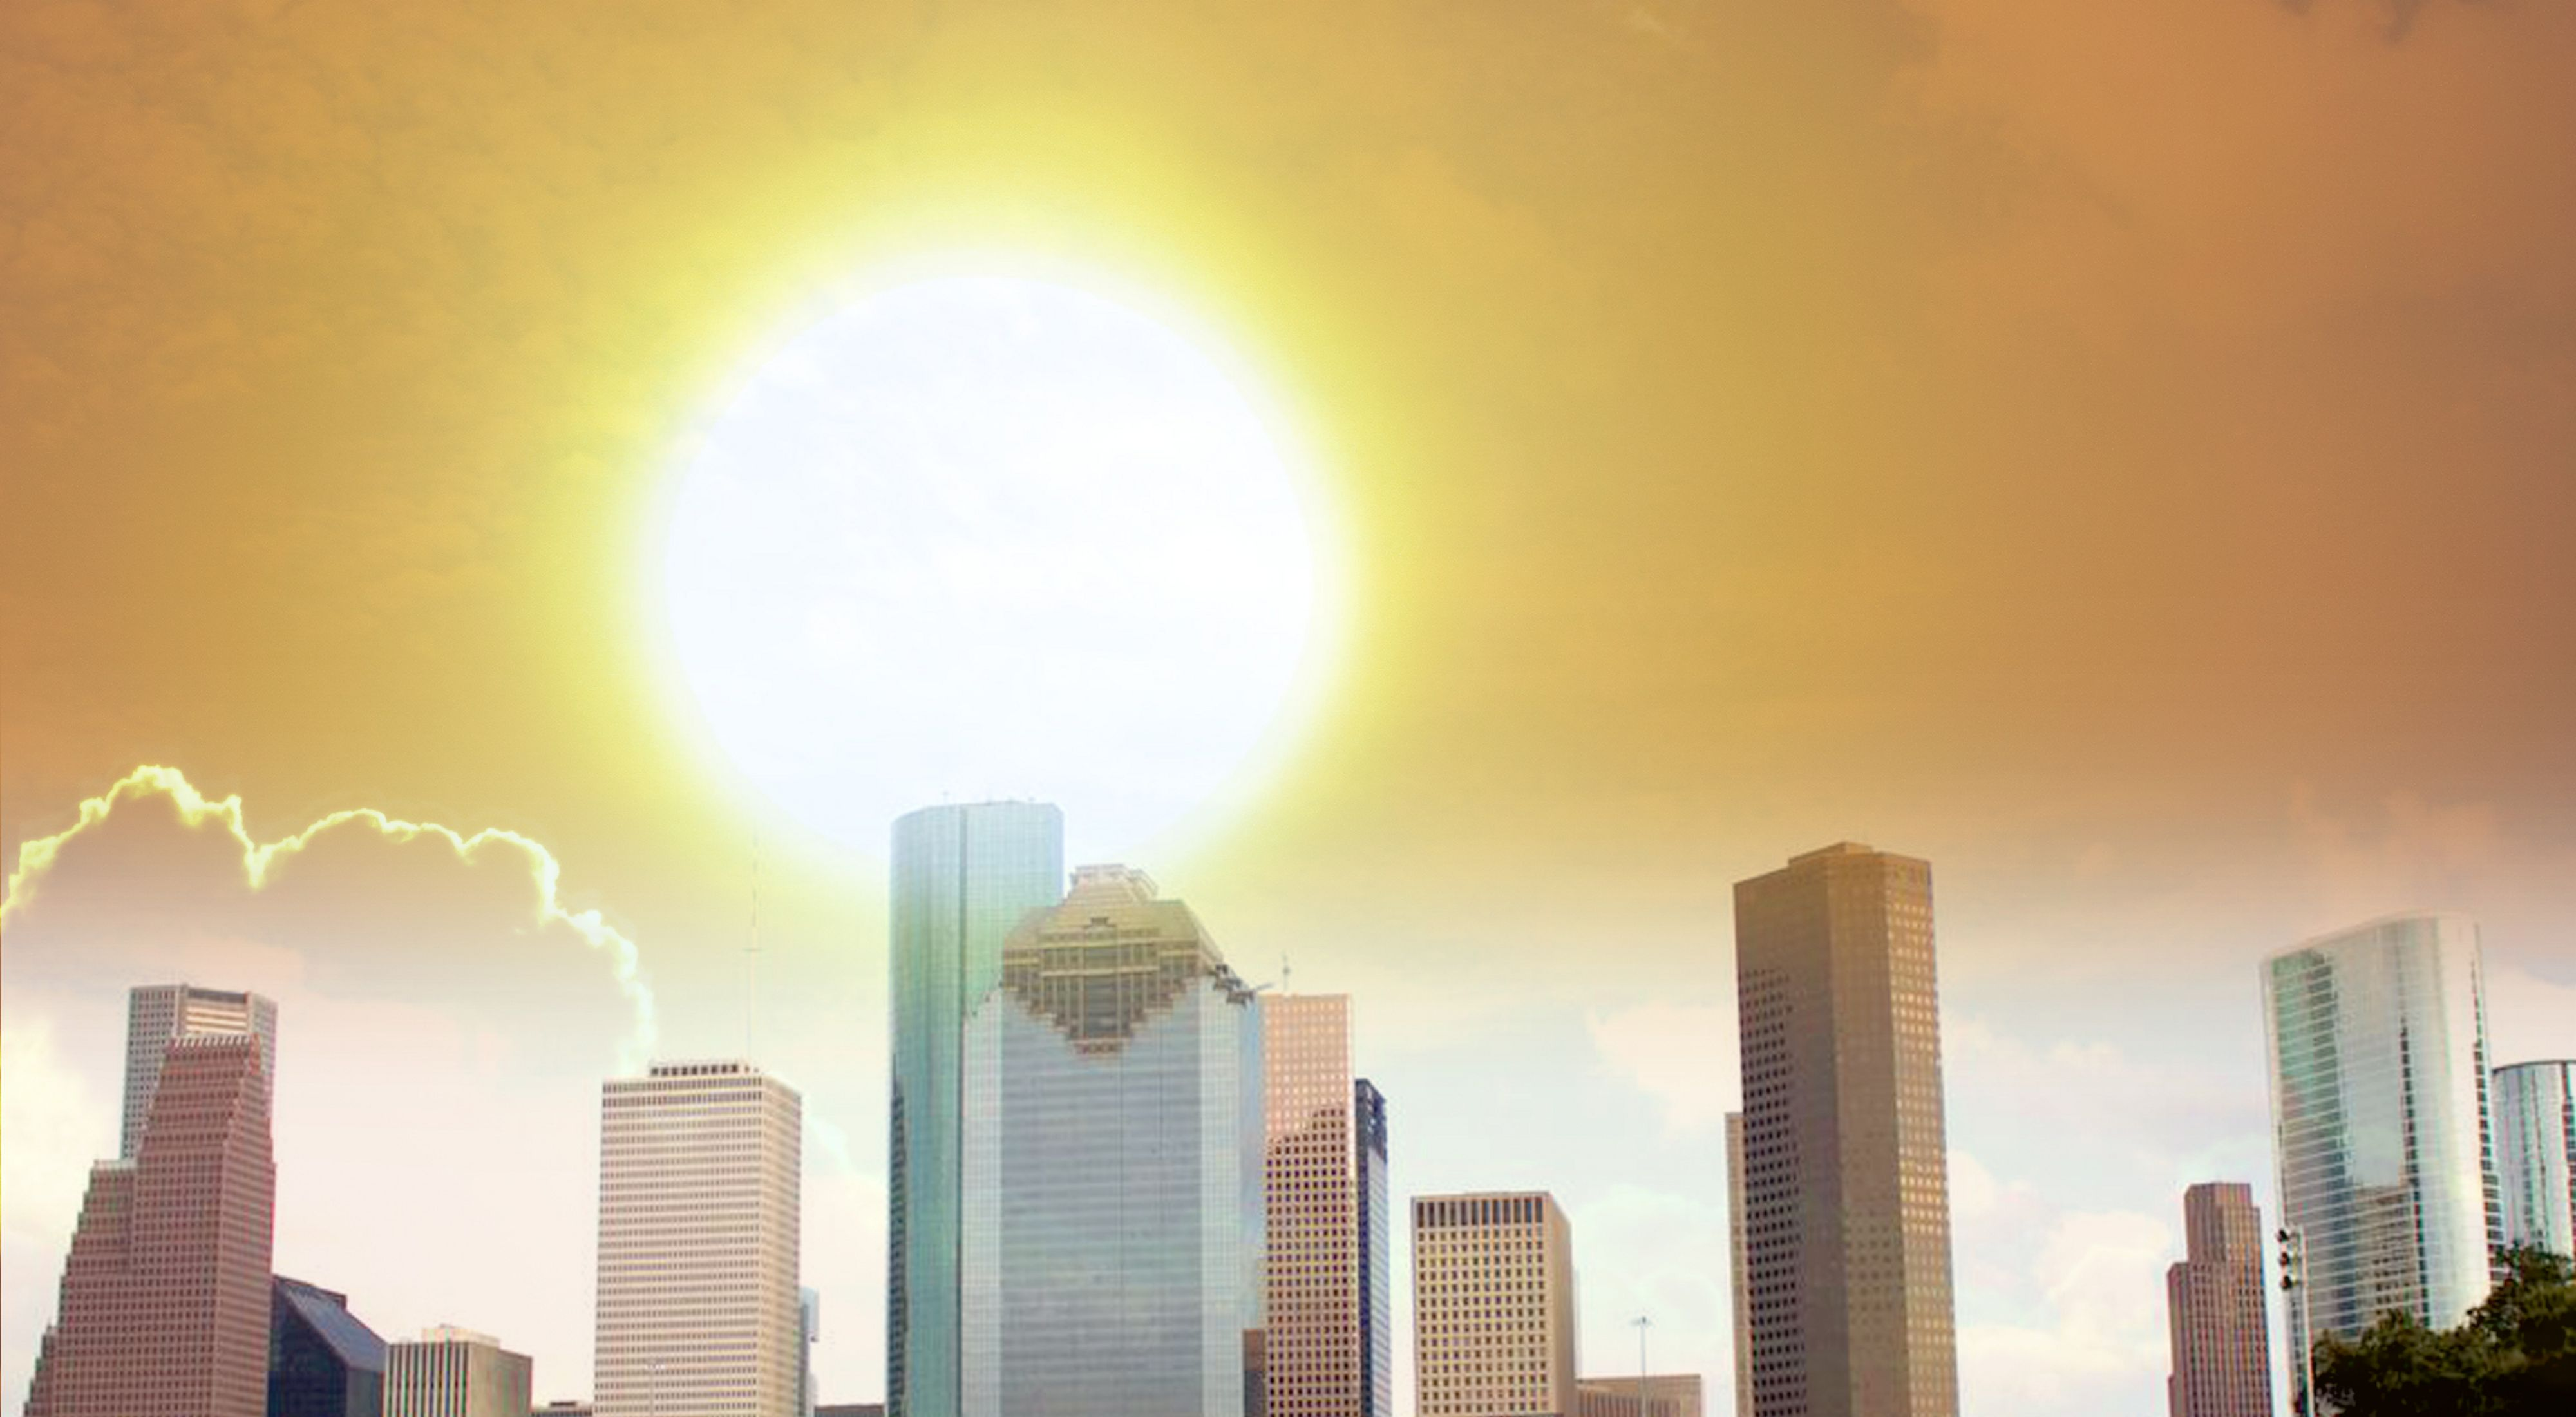 City skyline in Houston, Texas, which is experiencing increasing temperatures due to climate change.